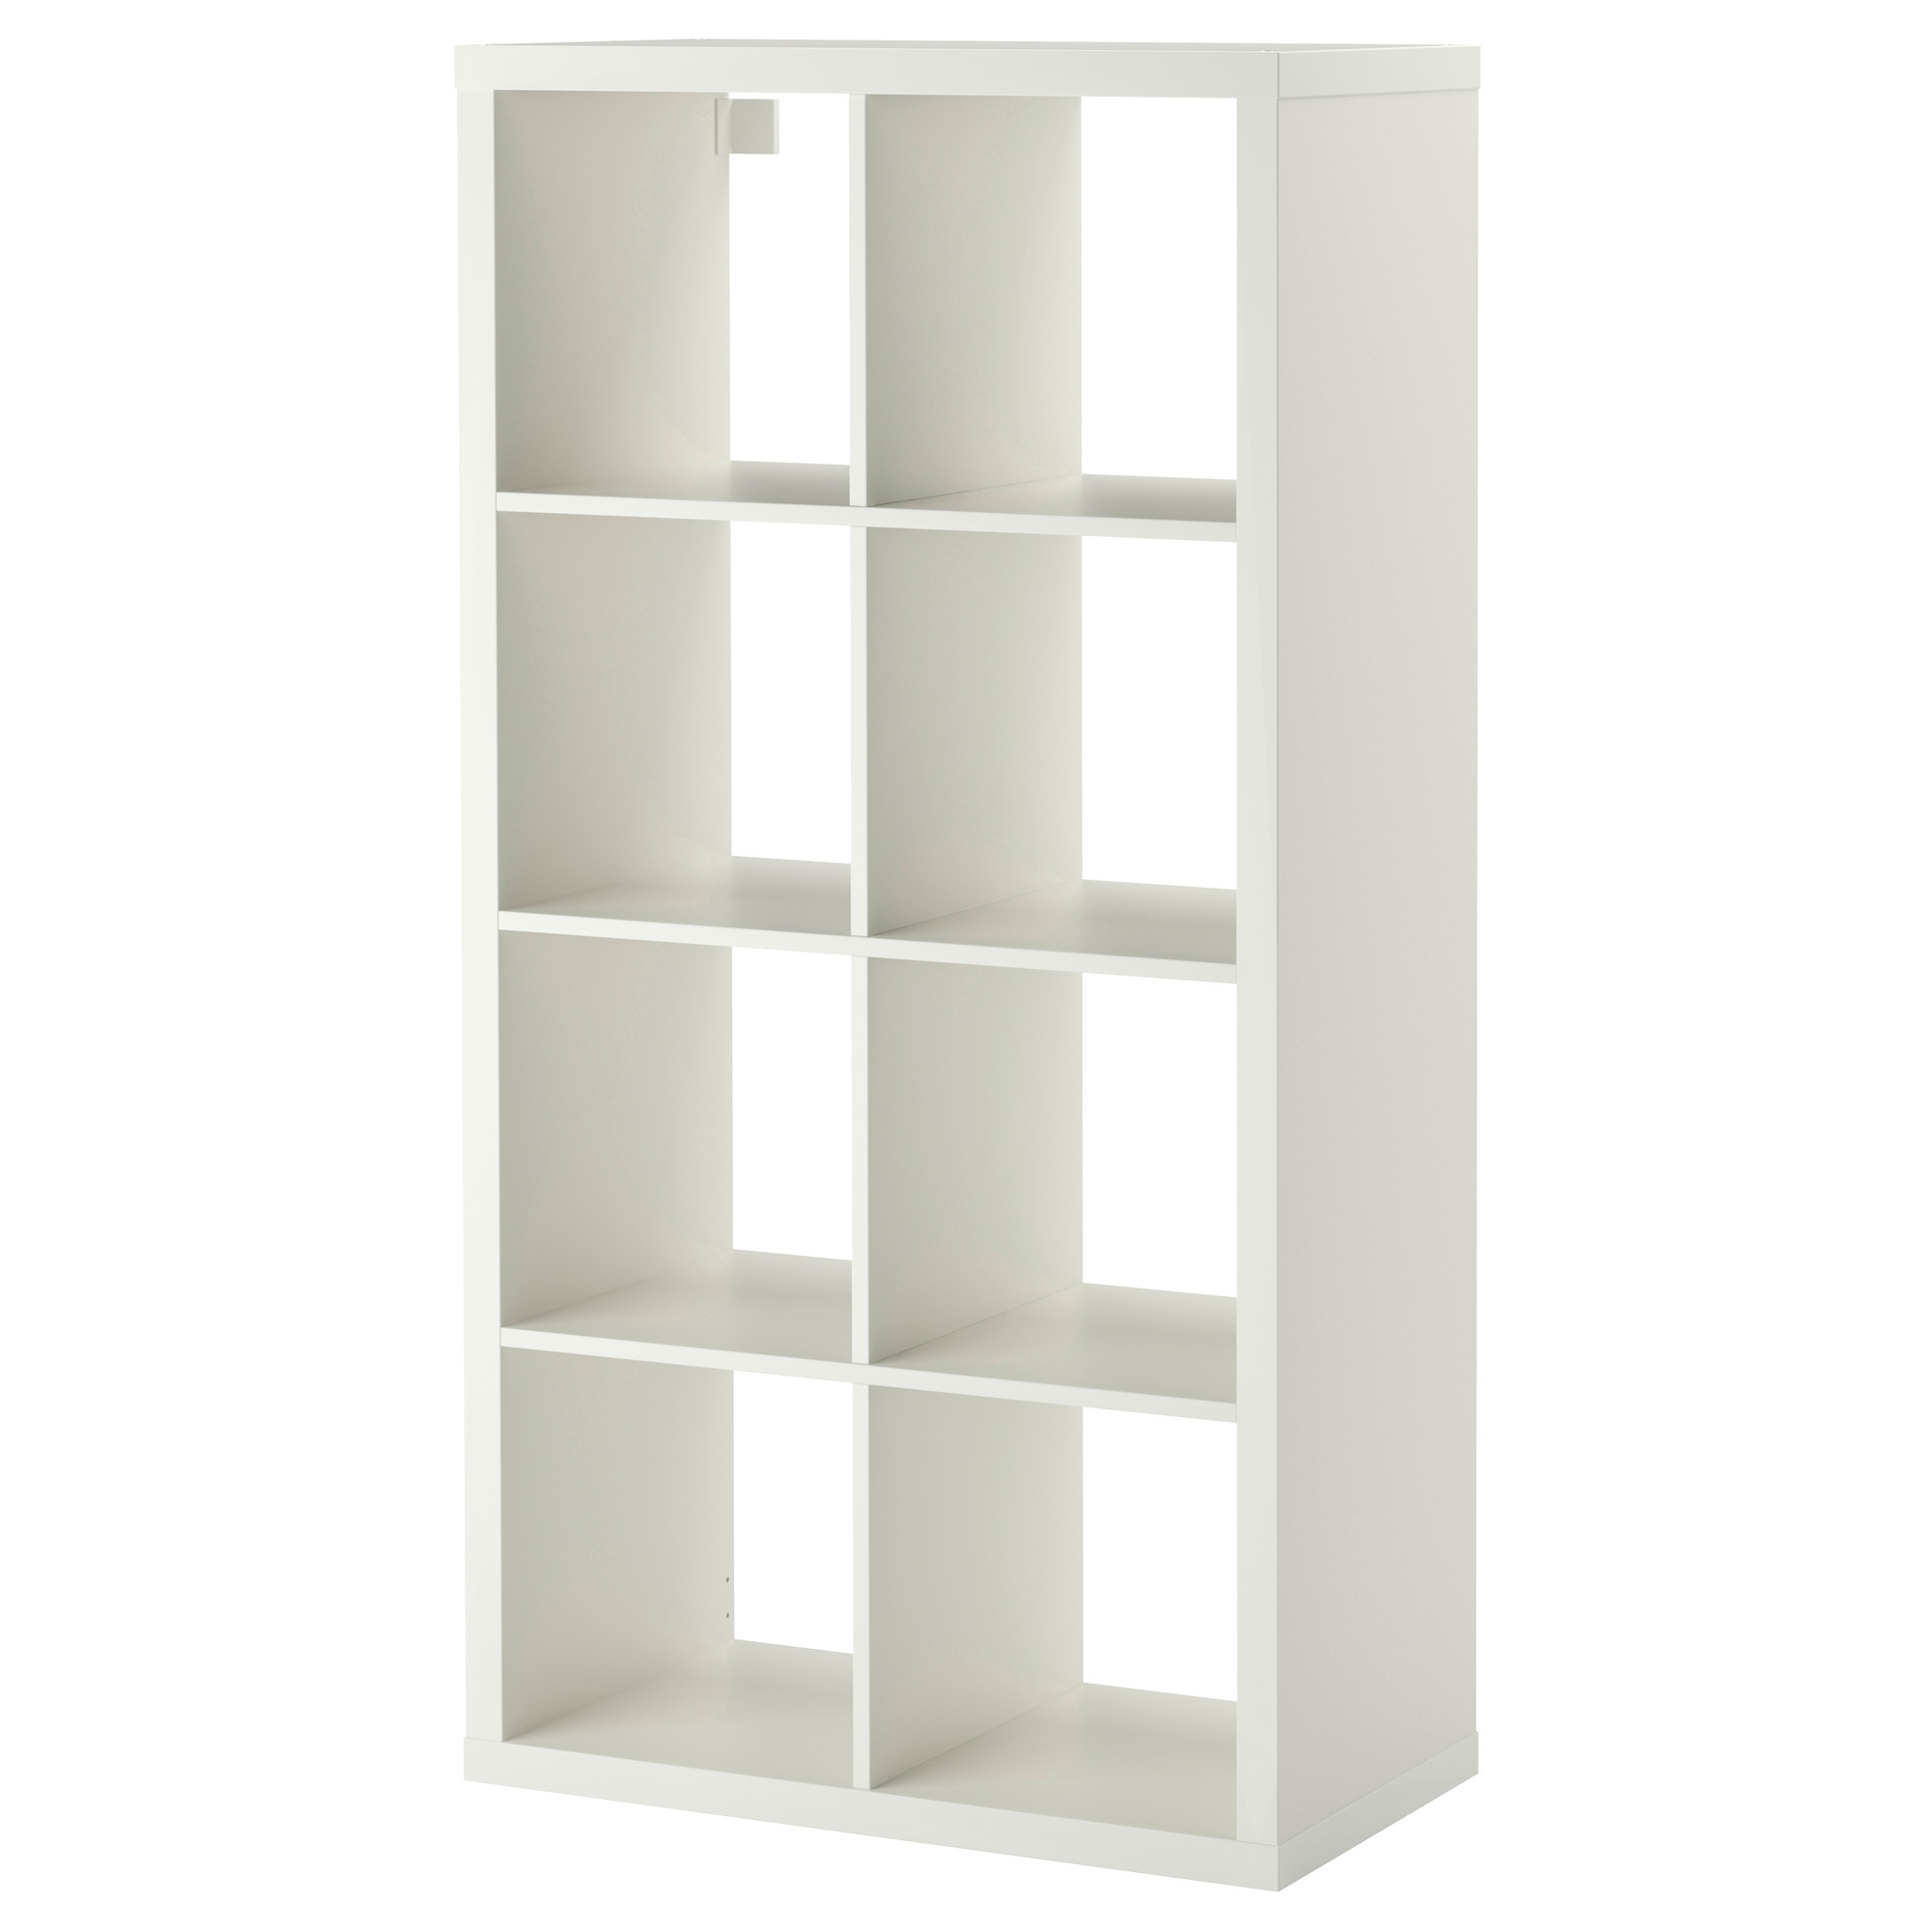 white shelf kallax shelf unit - white - ikea JJFLYKA